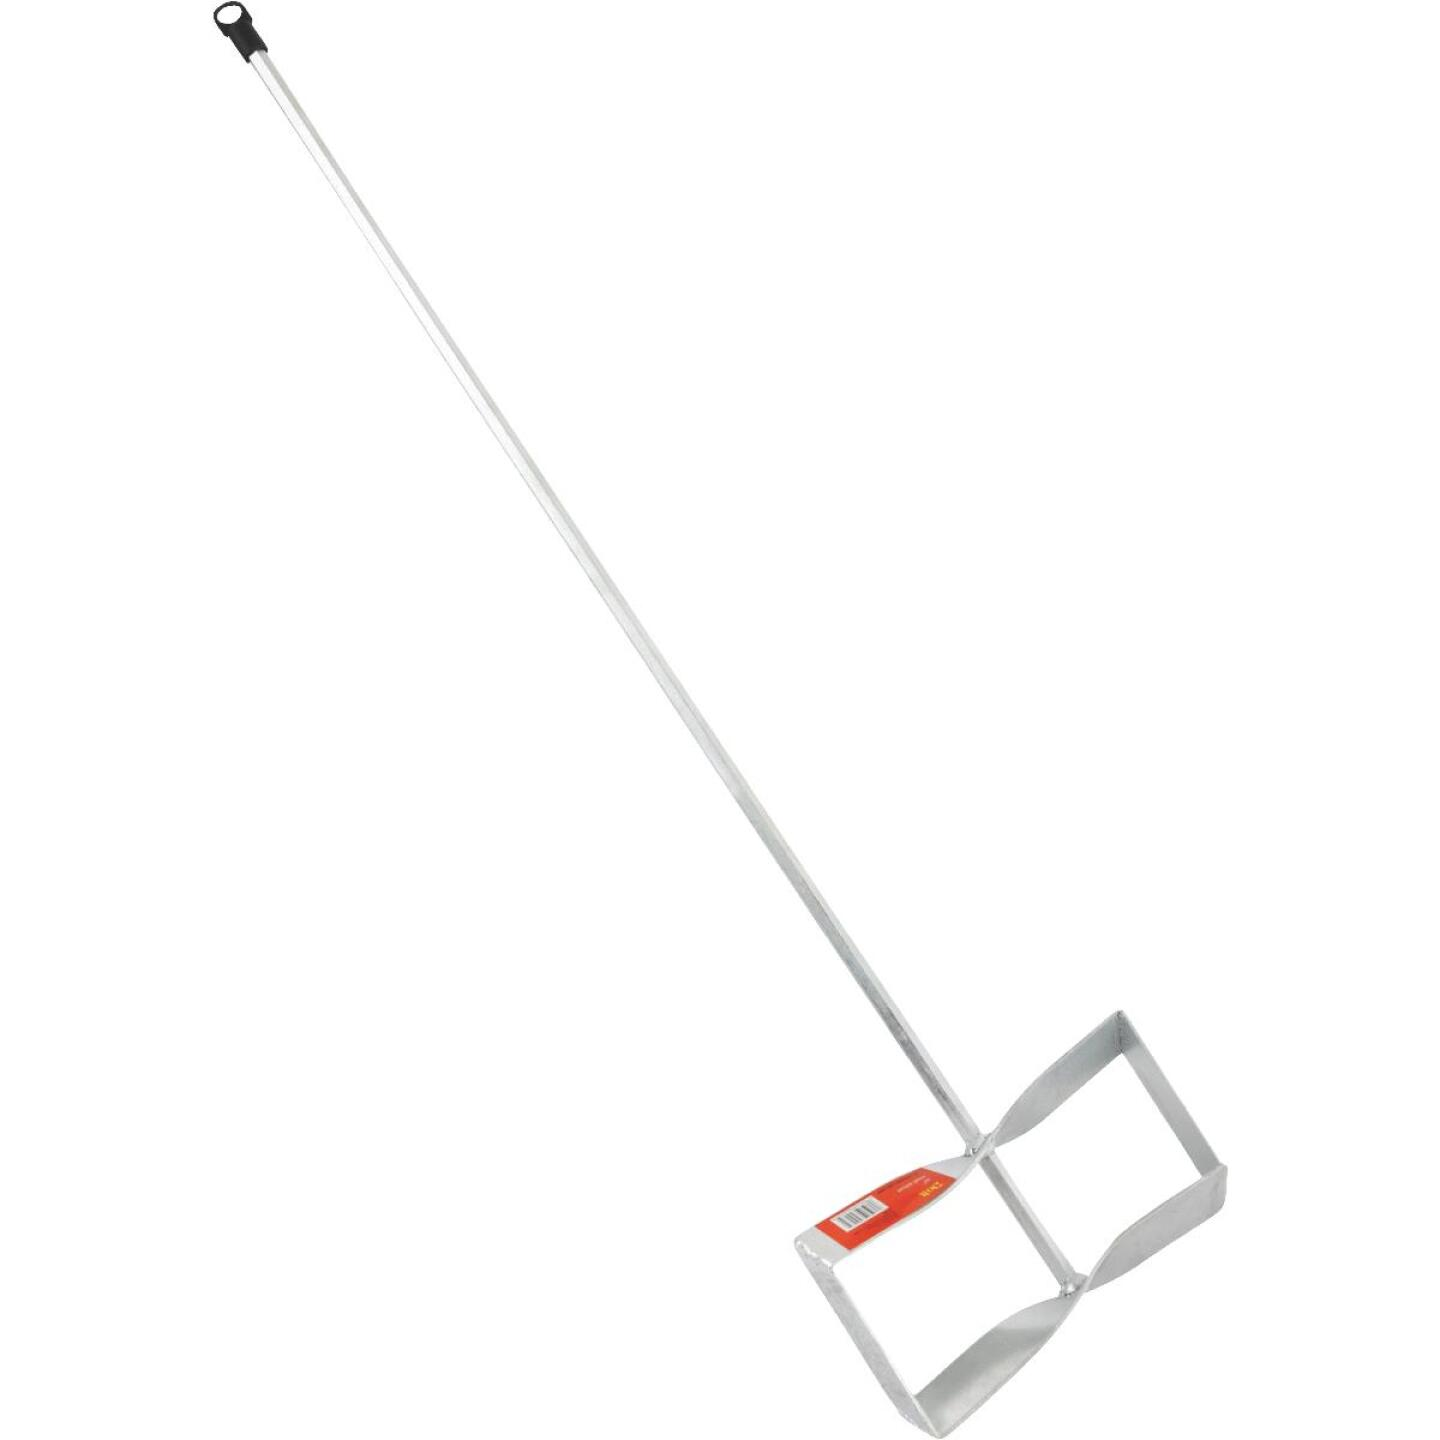 Do it Drywall Galvanised Steel 30 In. Mud Mixer Image 1